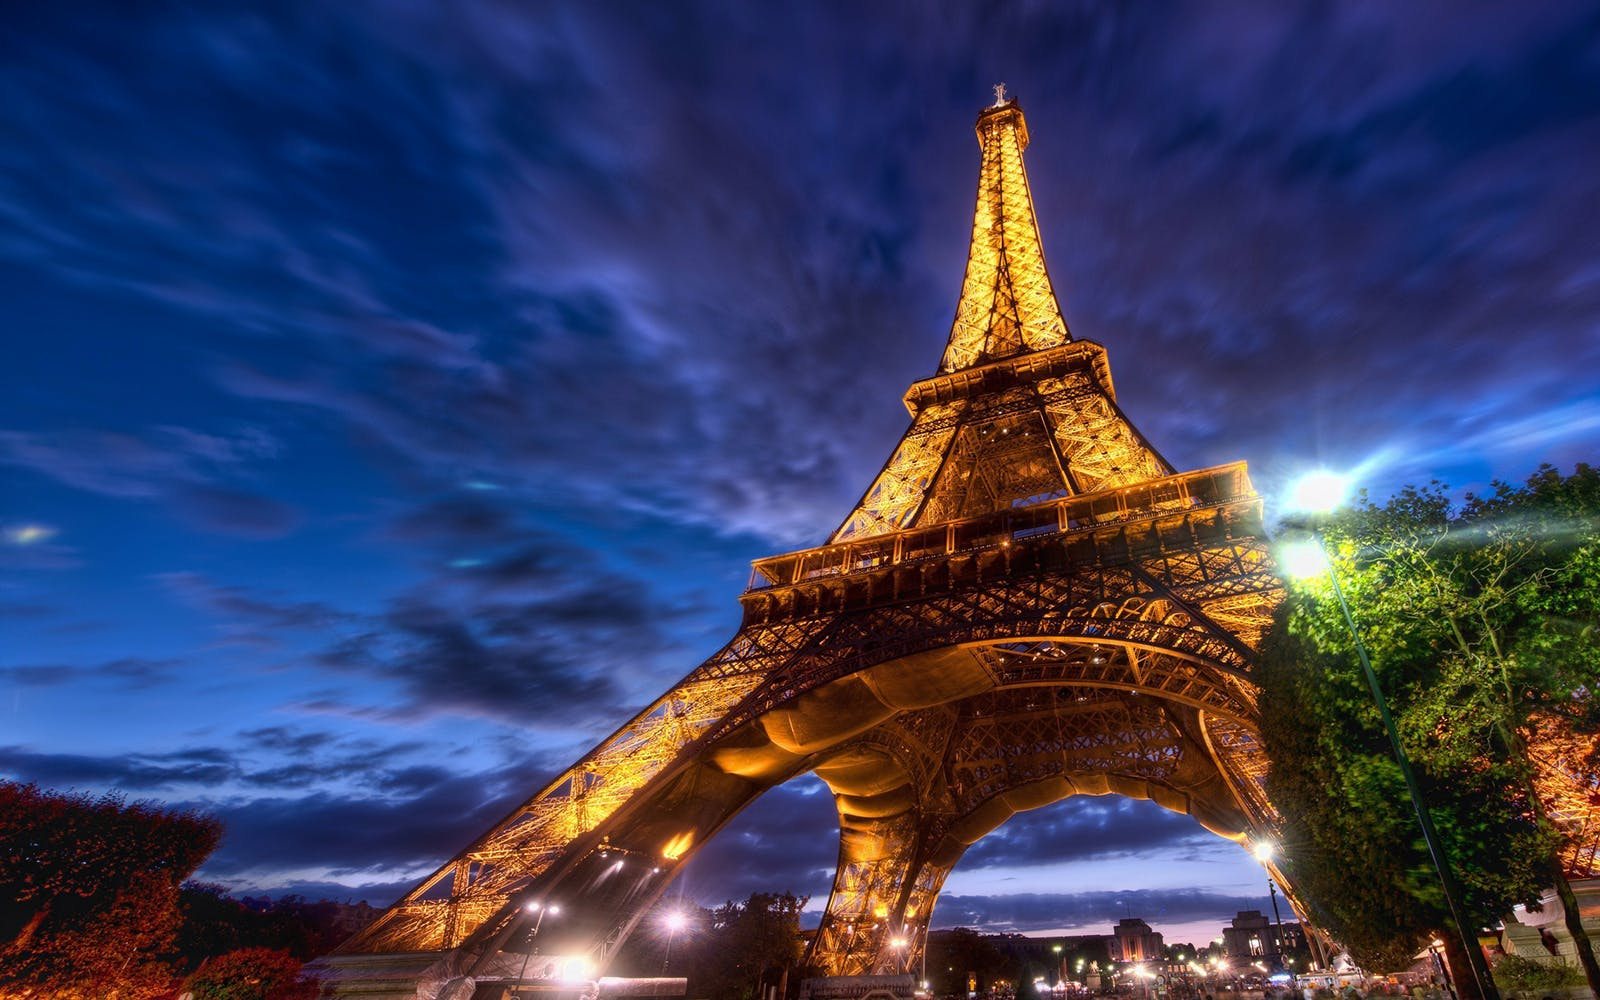 Skip the Line: Eiffel Tower & Louvre Museum